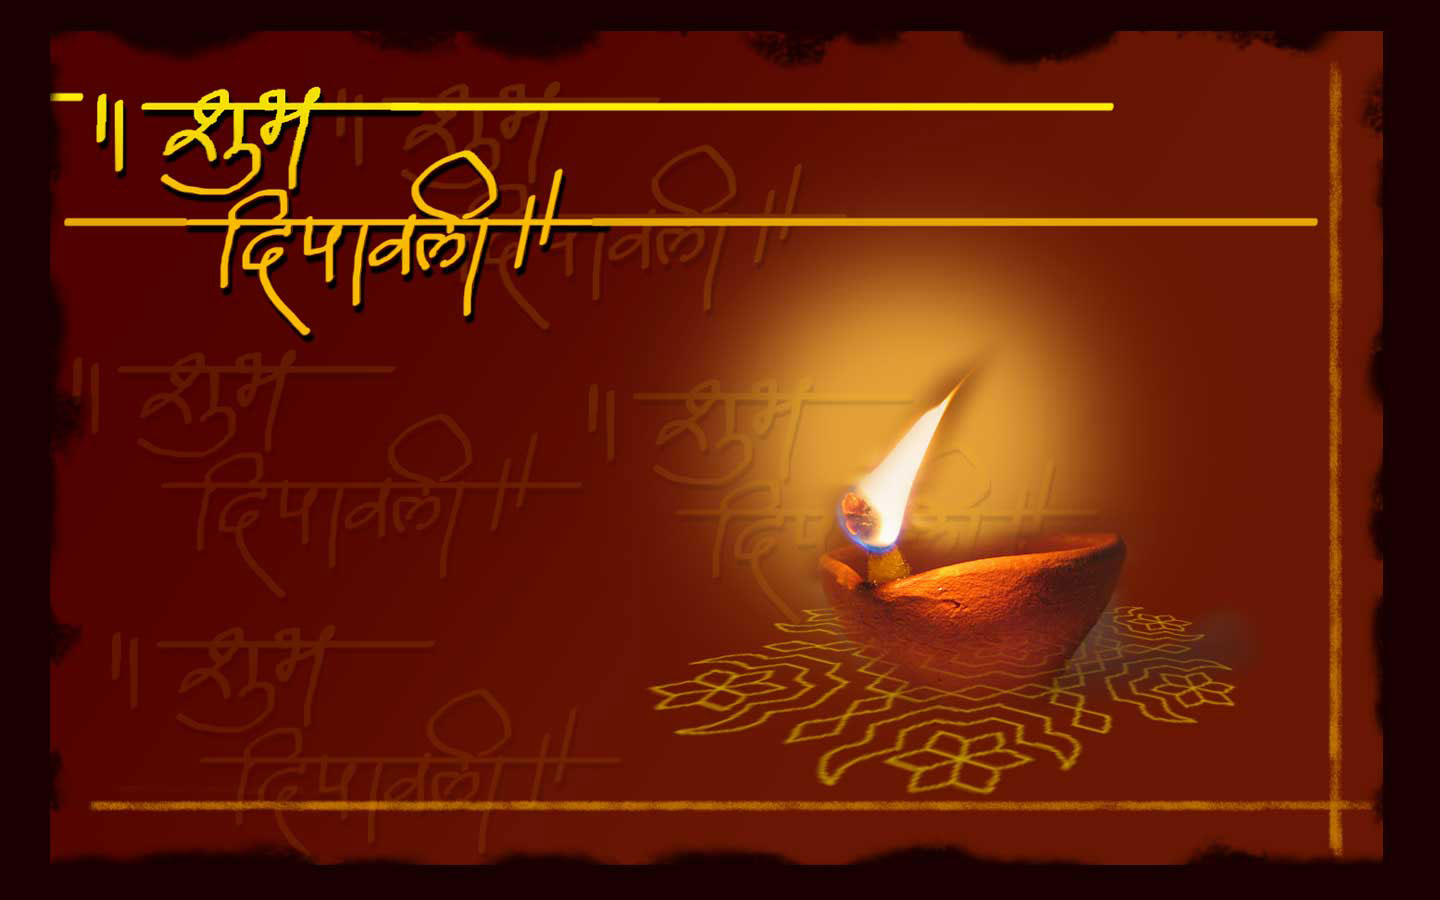 Happy Deepavali Sms Deepavali Messages For Whatsapp Daily Roabox